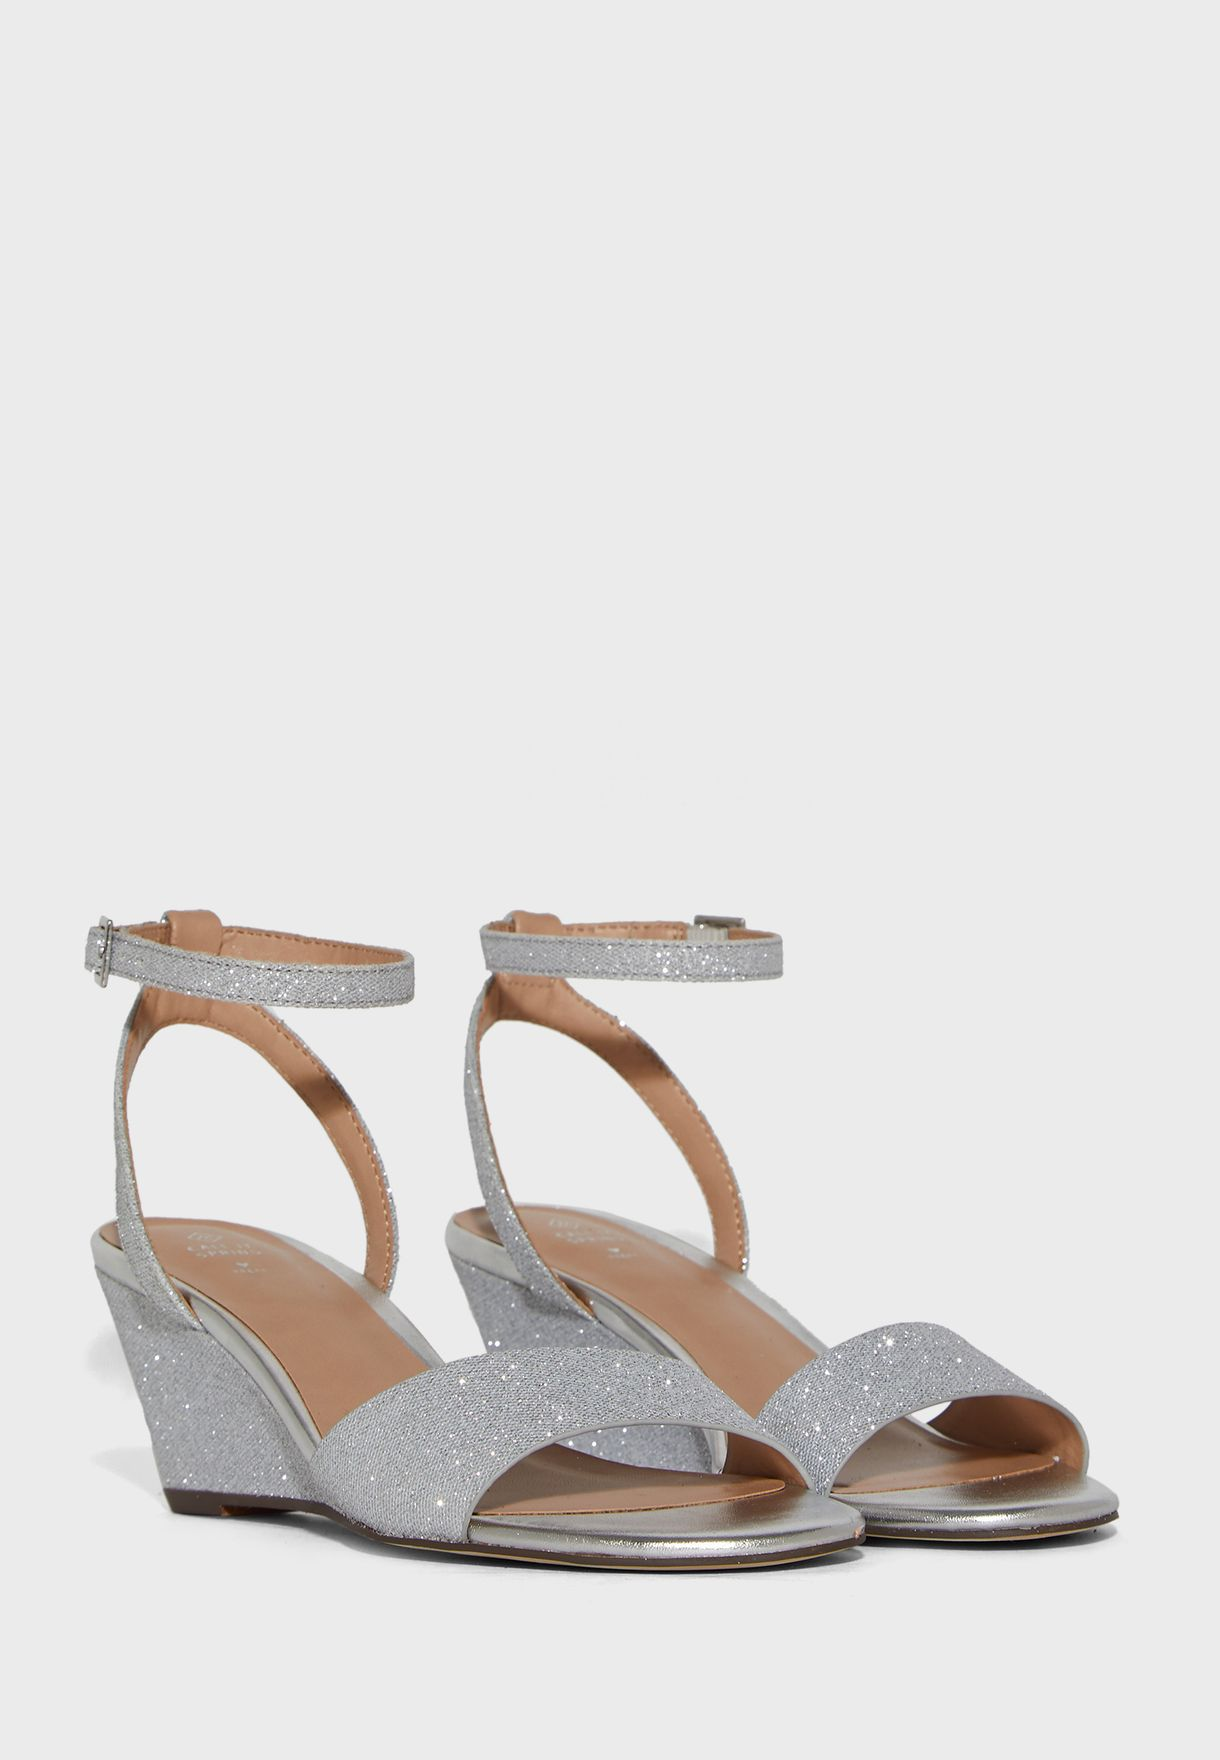 Catch Ankle Strap Wedge Sandal